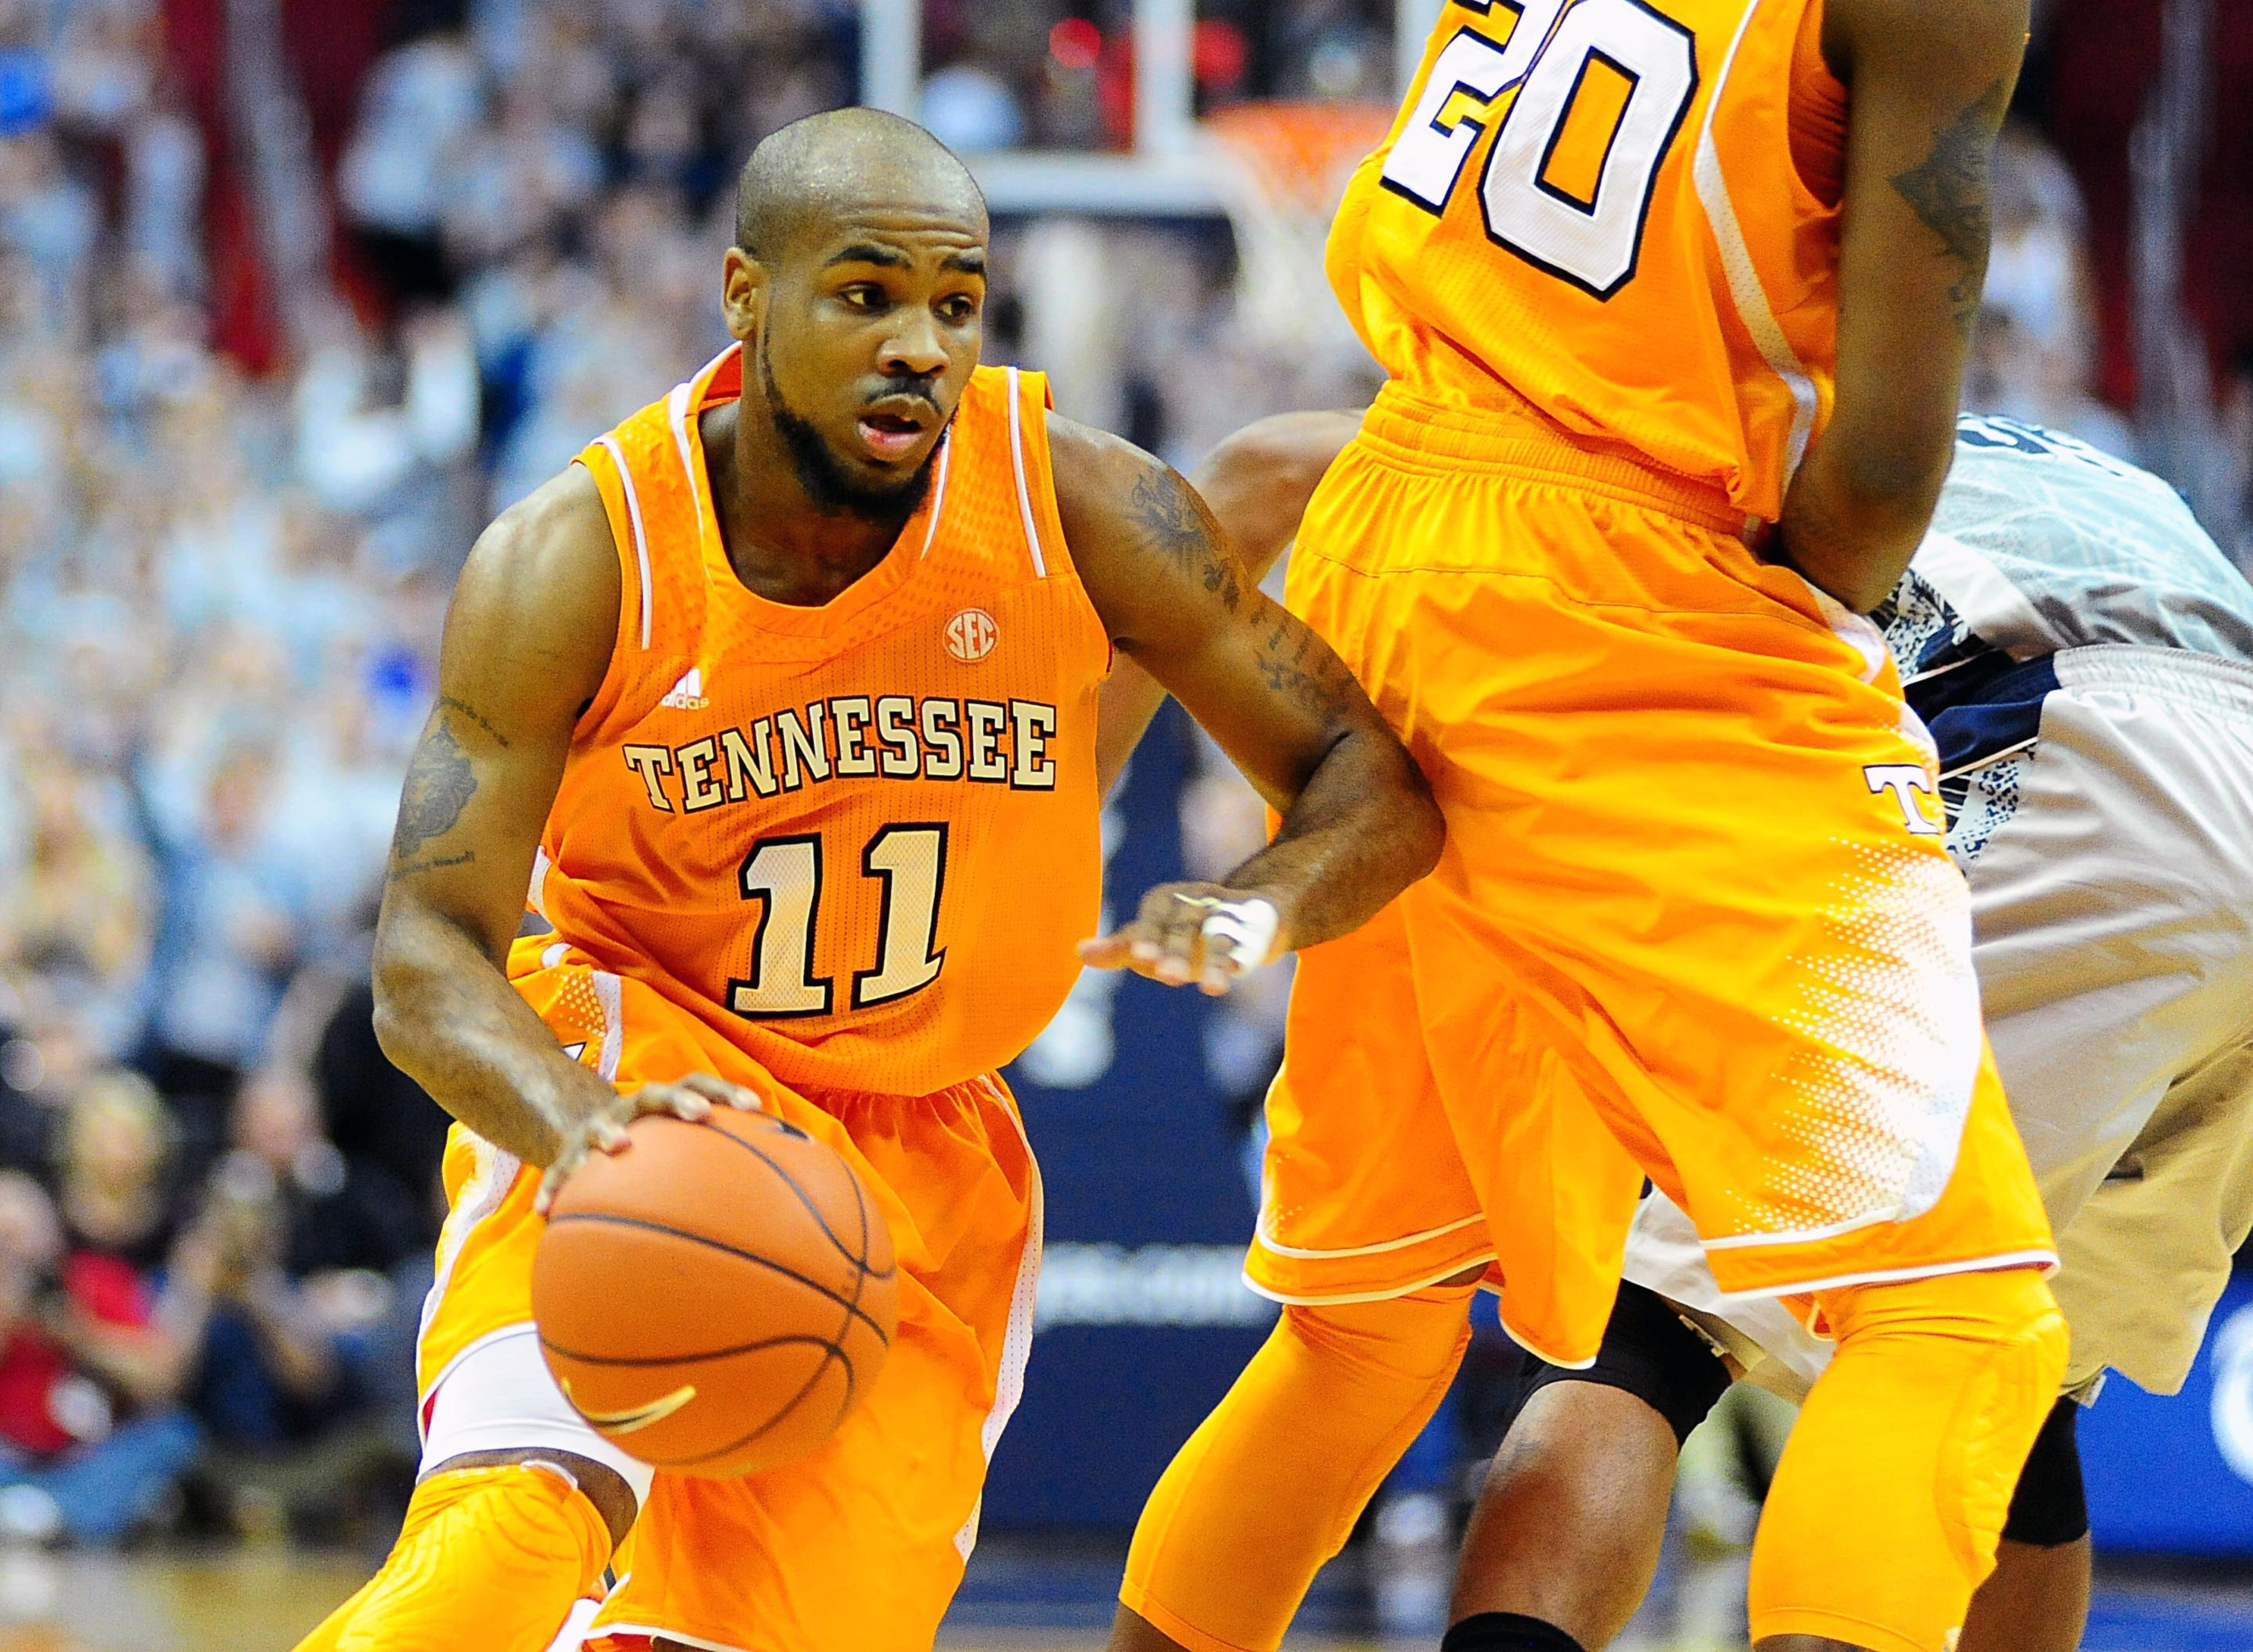 Is Trae Golden just a small part of a huge problem at Tennessee?